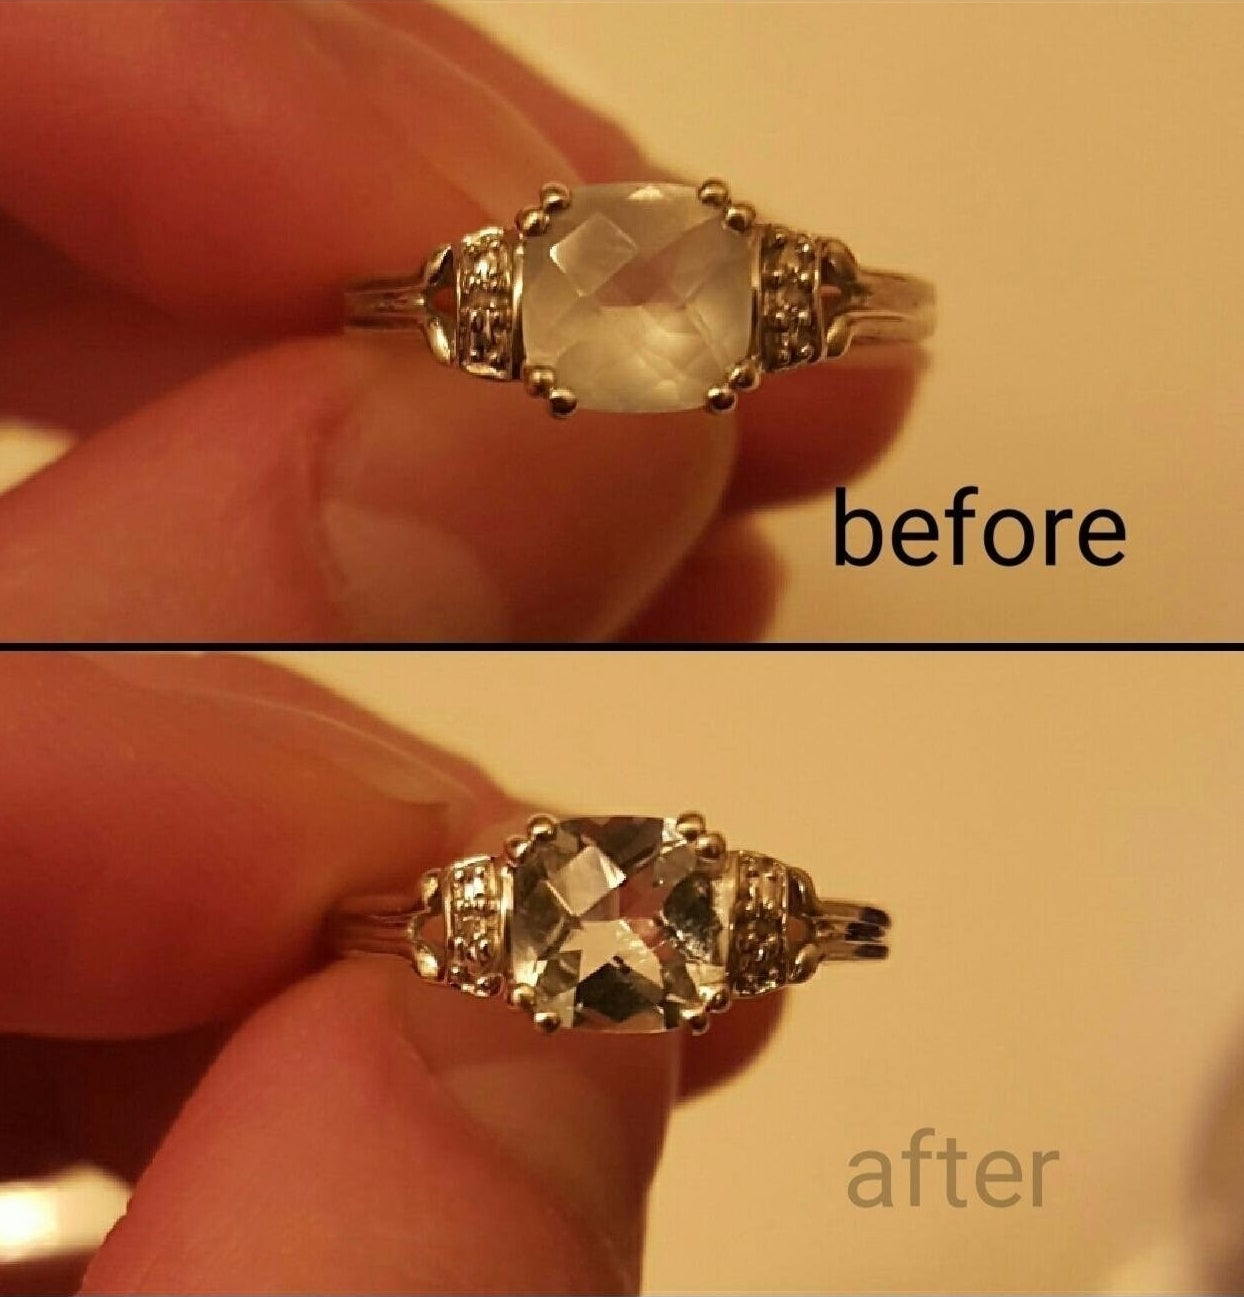 A before-and-after photo showing the results of the pen cleaner on a ring